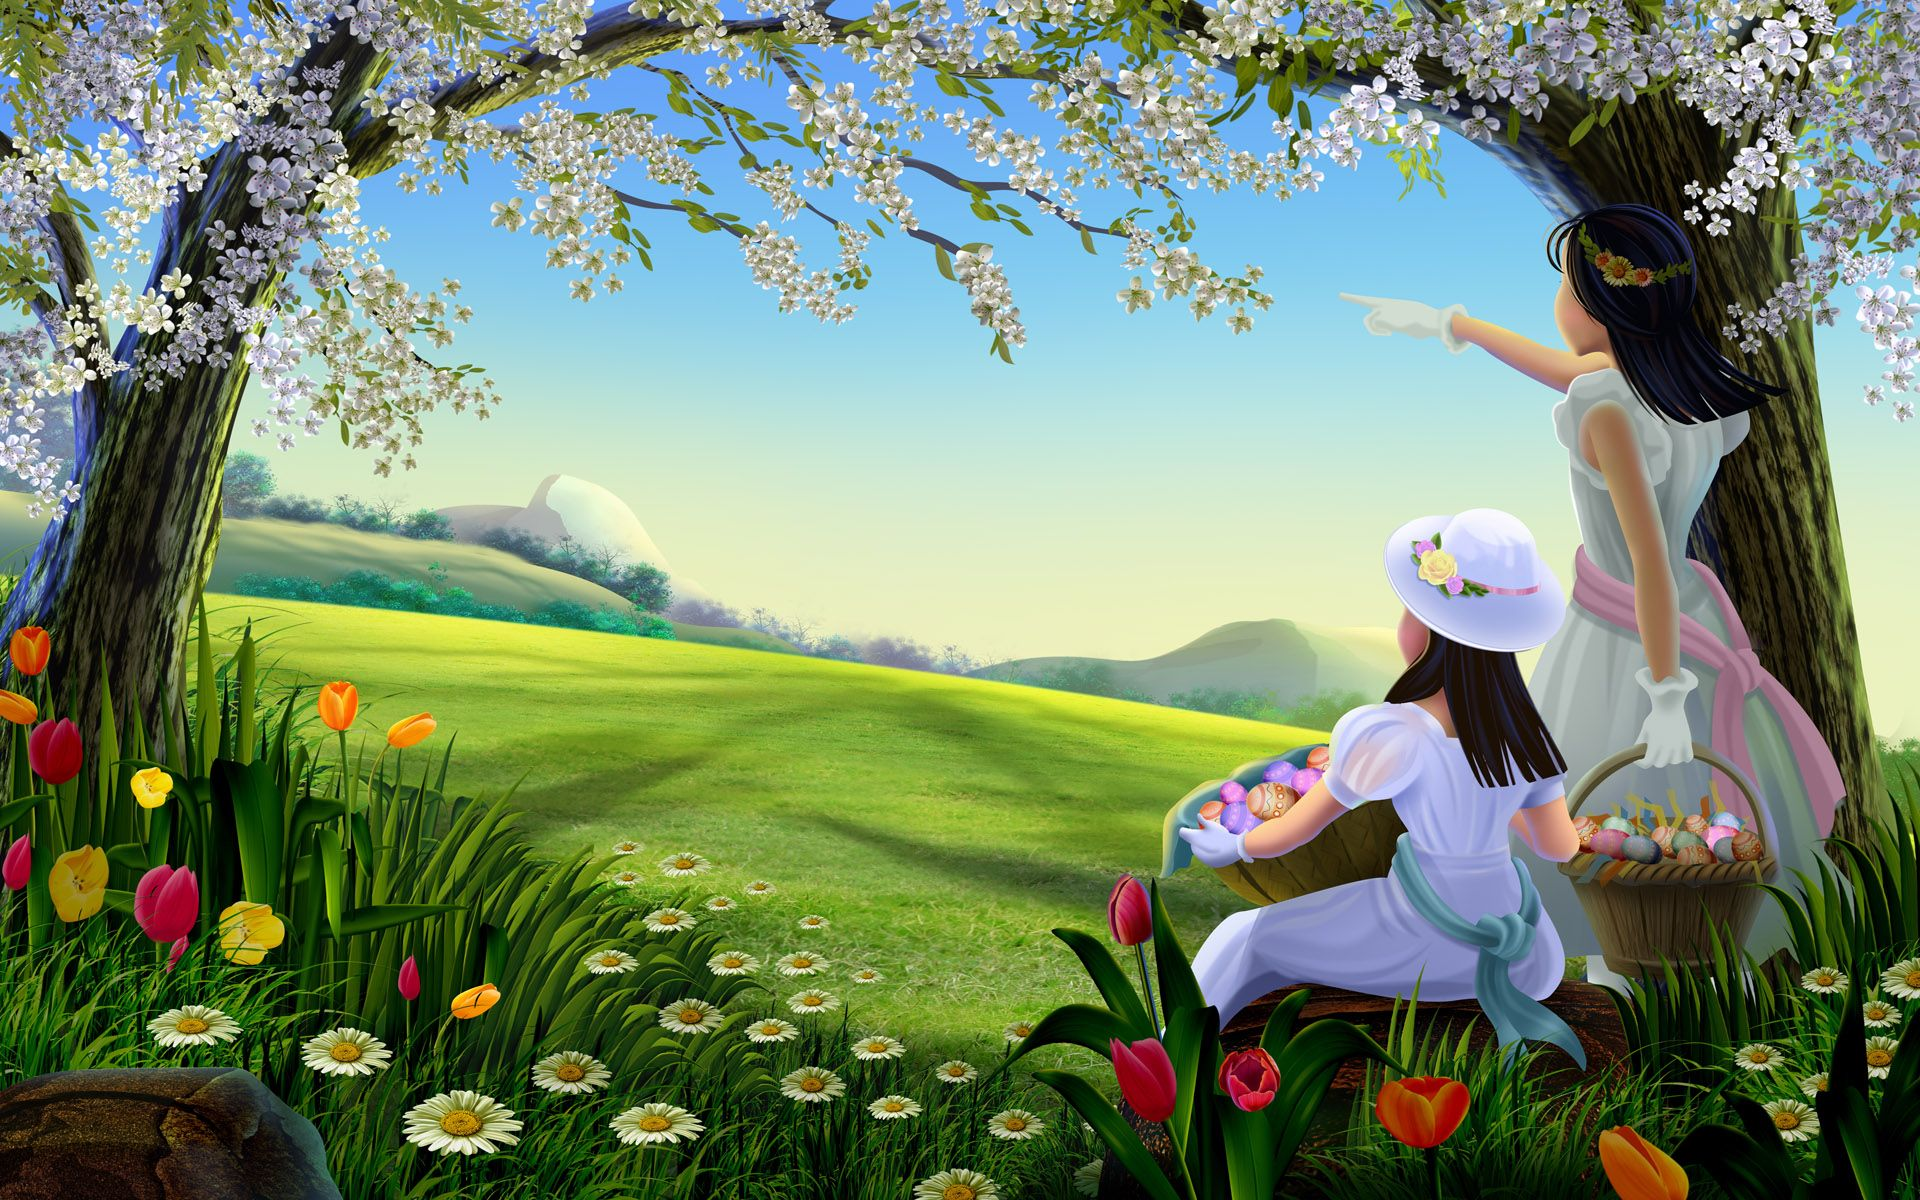 Fairy Tale Natural Full Hd Cartoon Wallpapers Free Download Beautiful Nature Wallpaper Beautiful Images Nature Nature Wallpaper